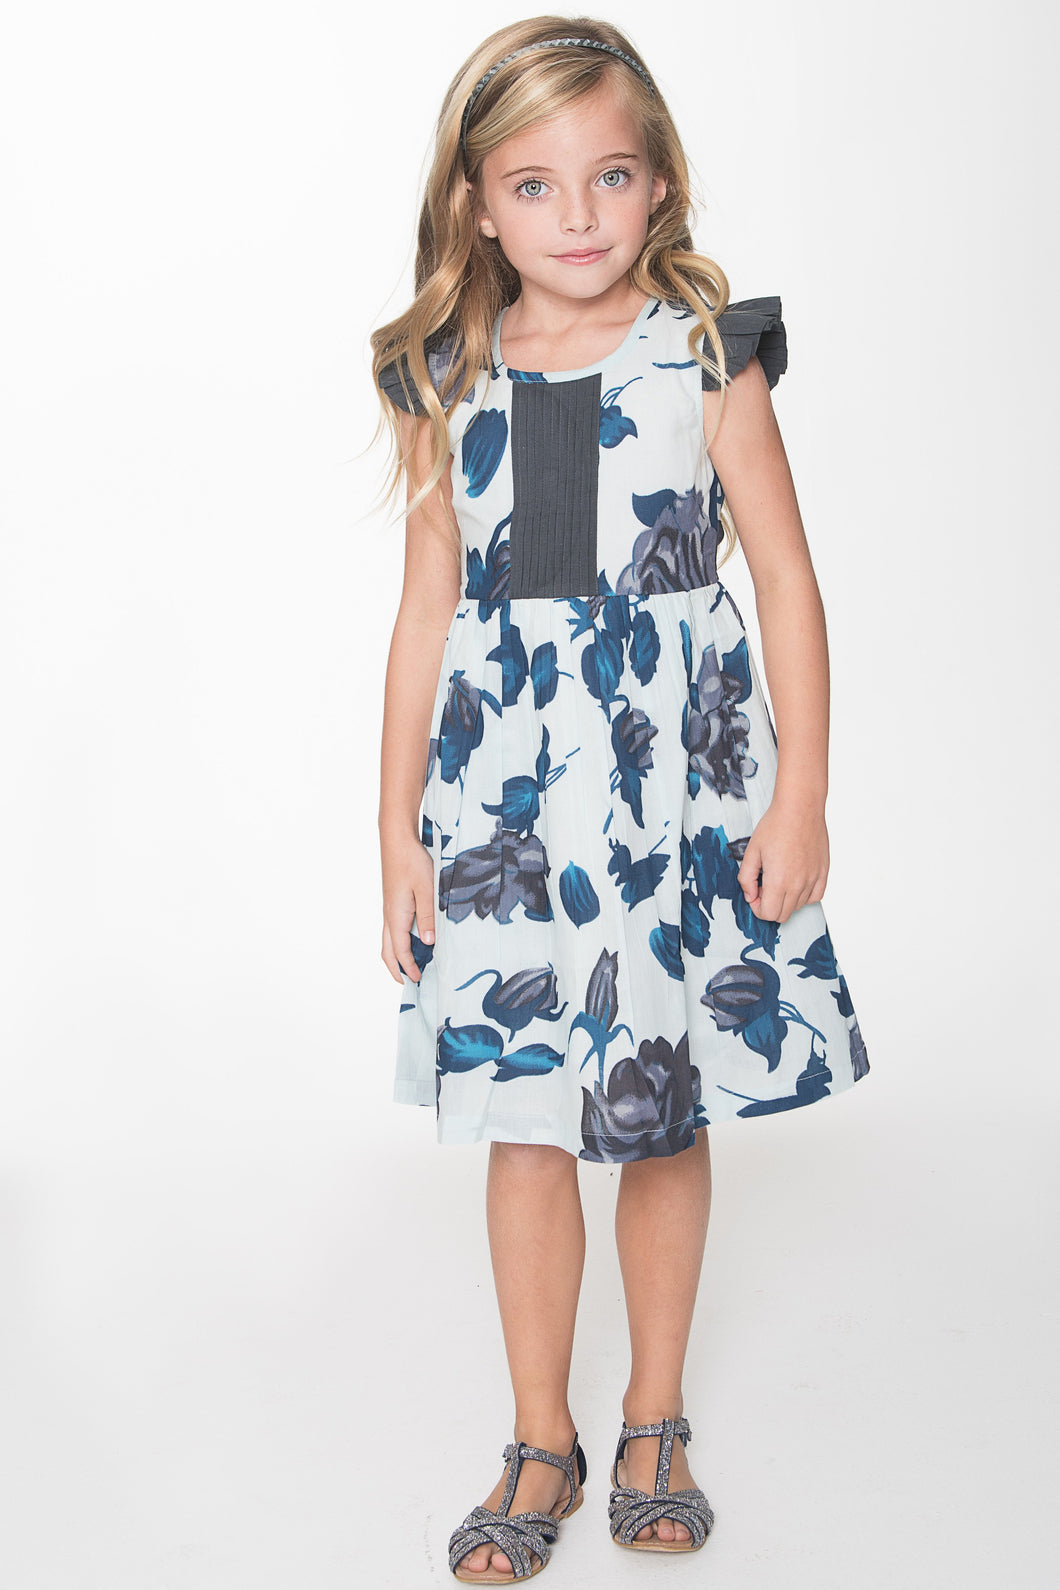 White and Blue Floral with  Grey Pin-Tuck and Frilled Cap Sleeve Dress - Kids Clothing, Dress - Girls Dress, Yo Baby Online - Yo Baby